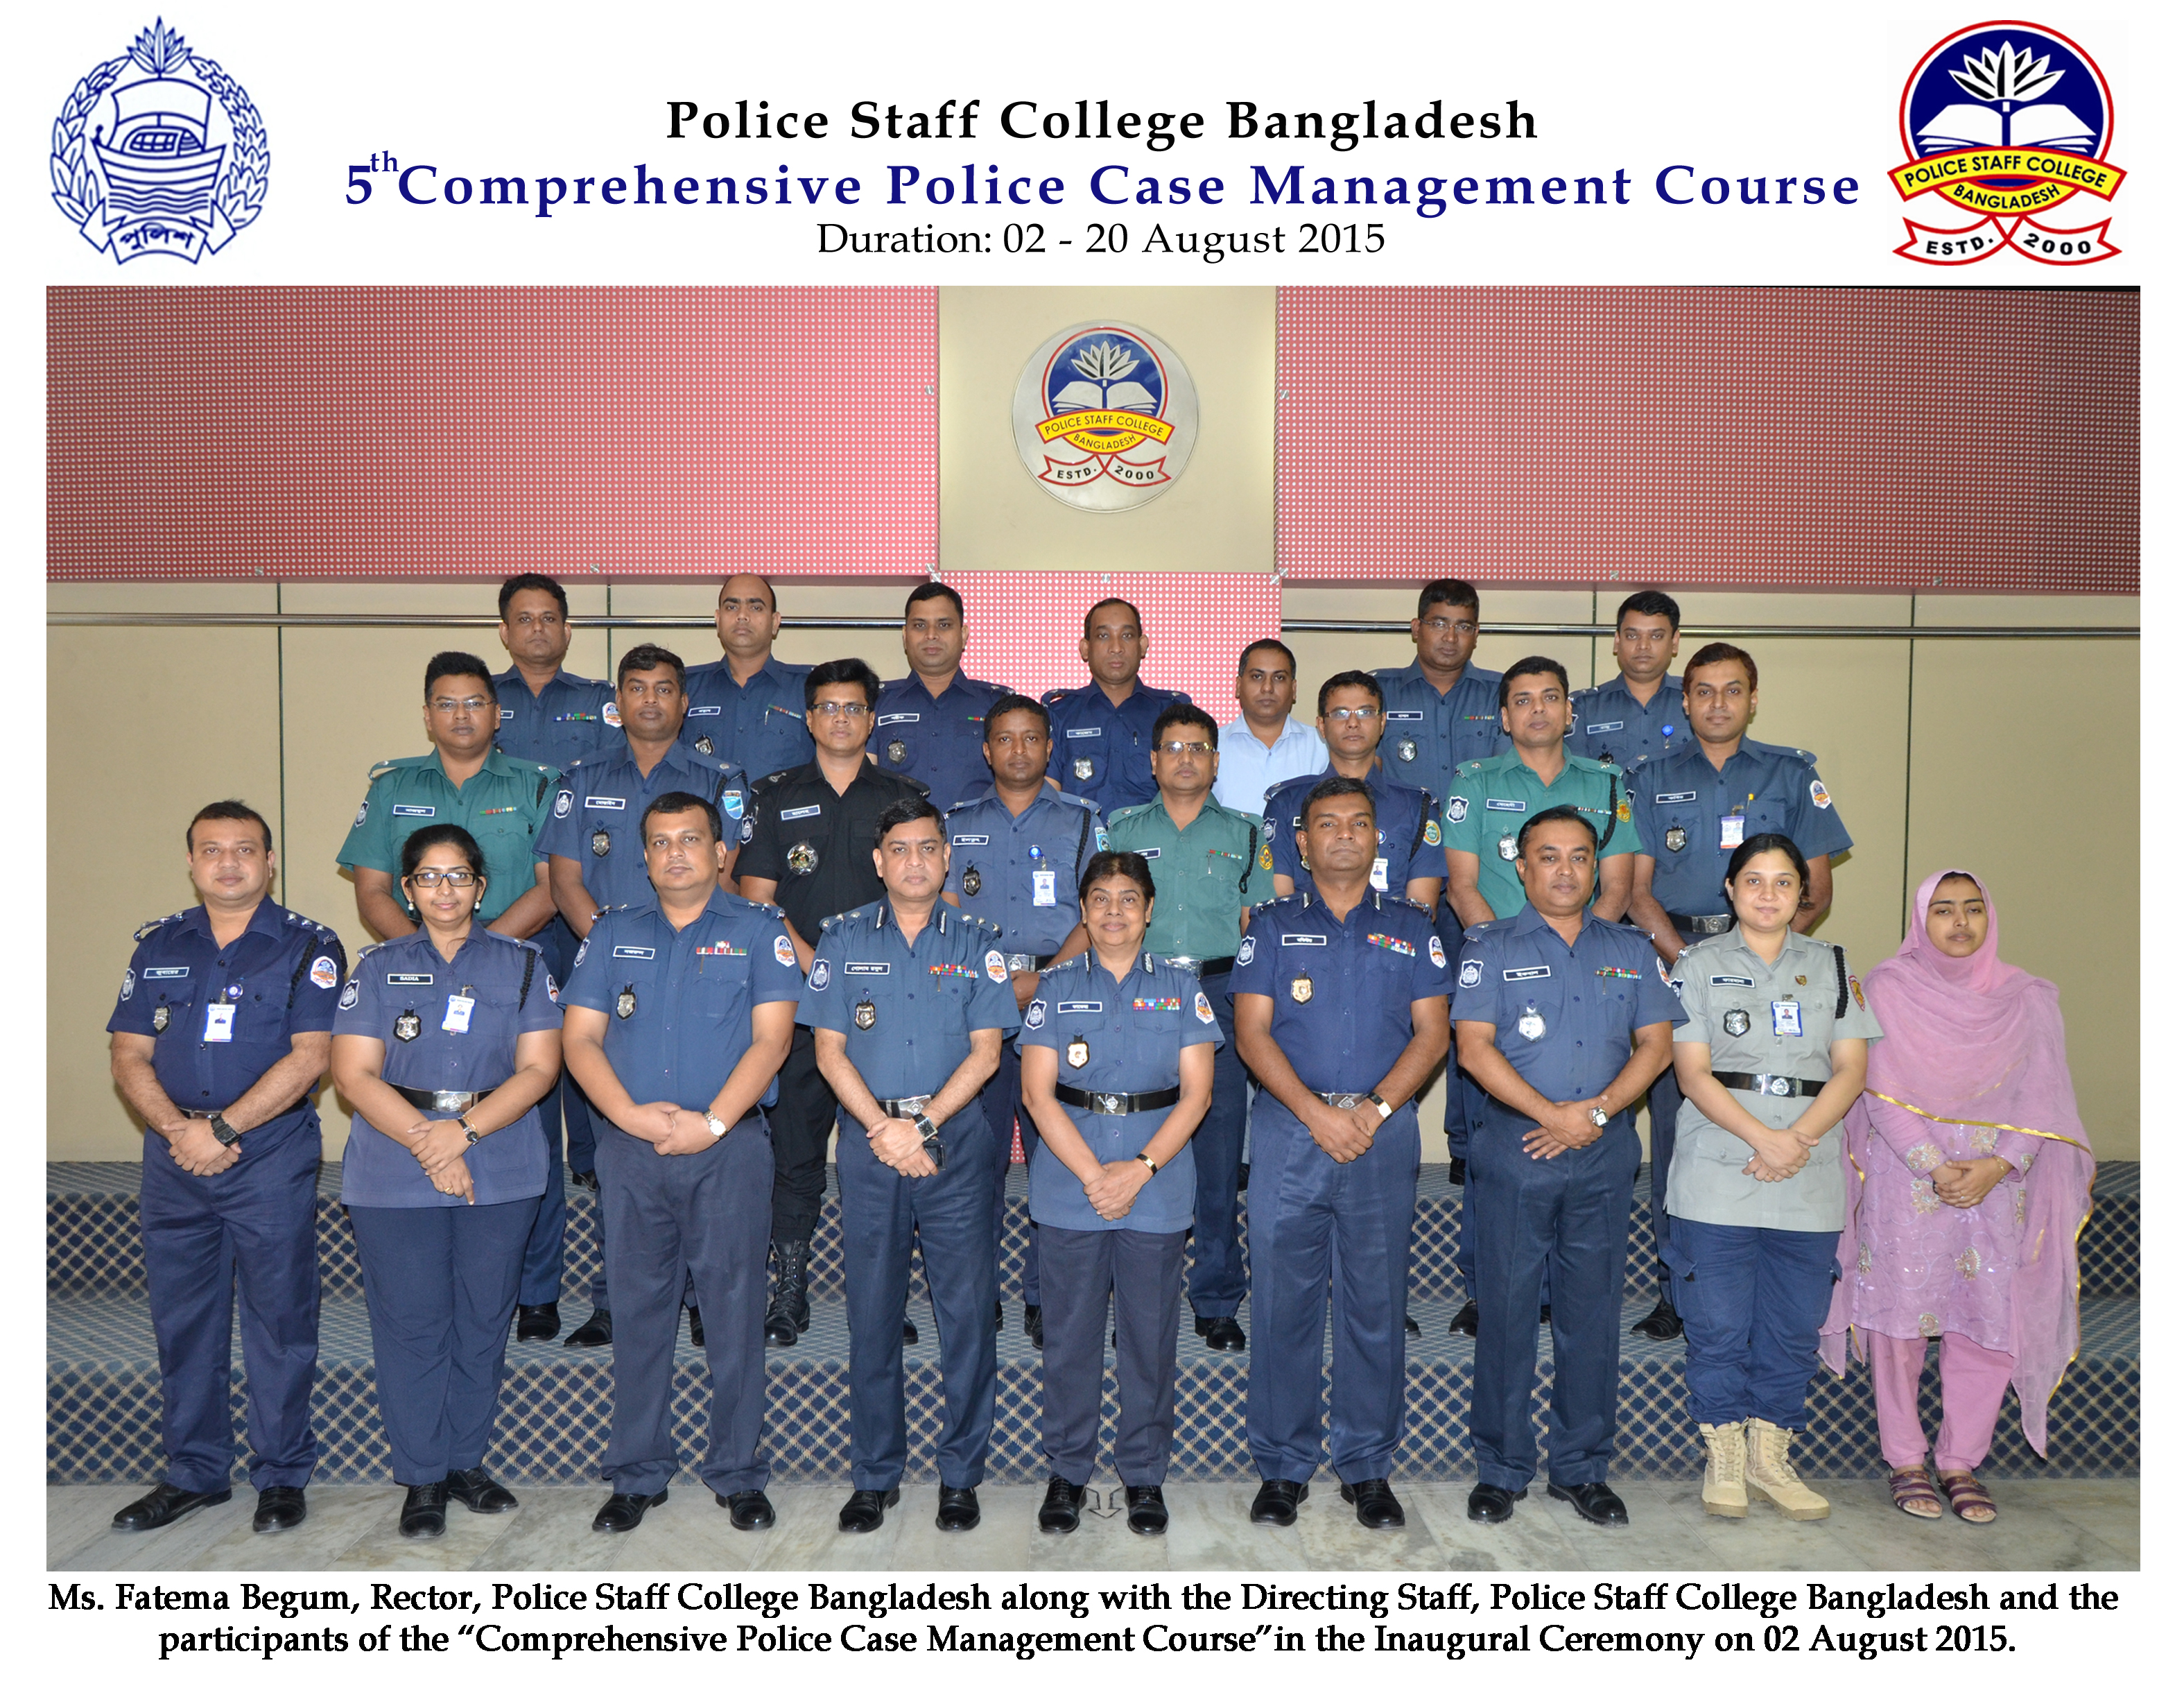 Participant of 5th Comprehensive Police Case Management Course